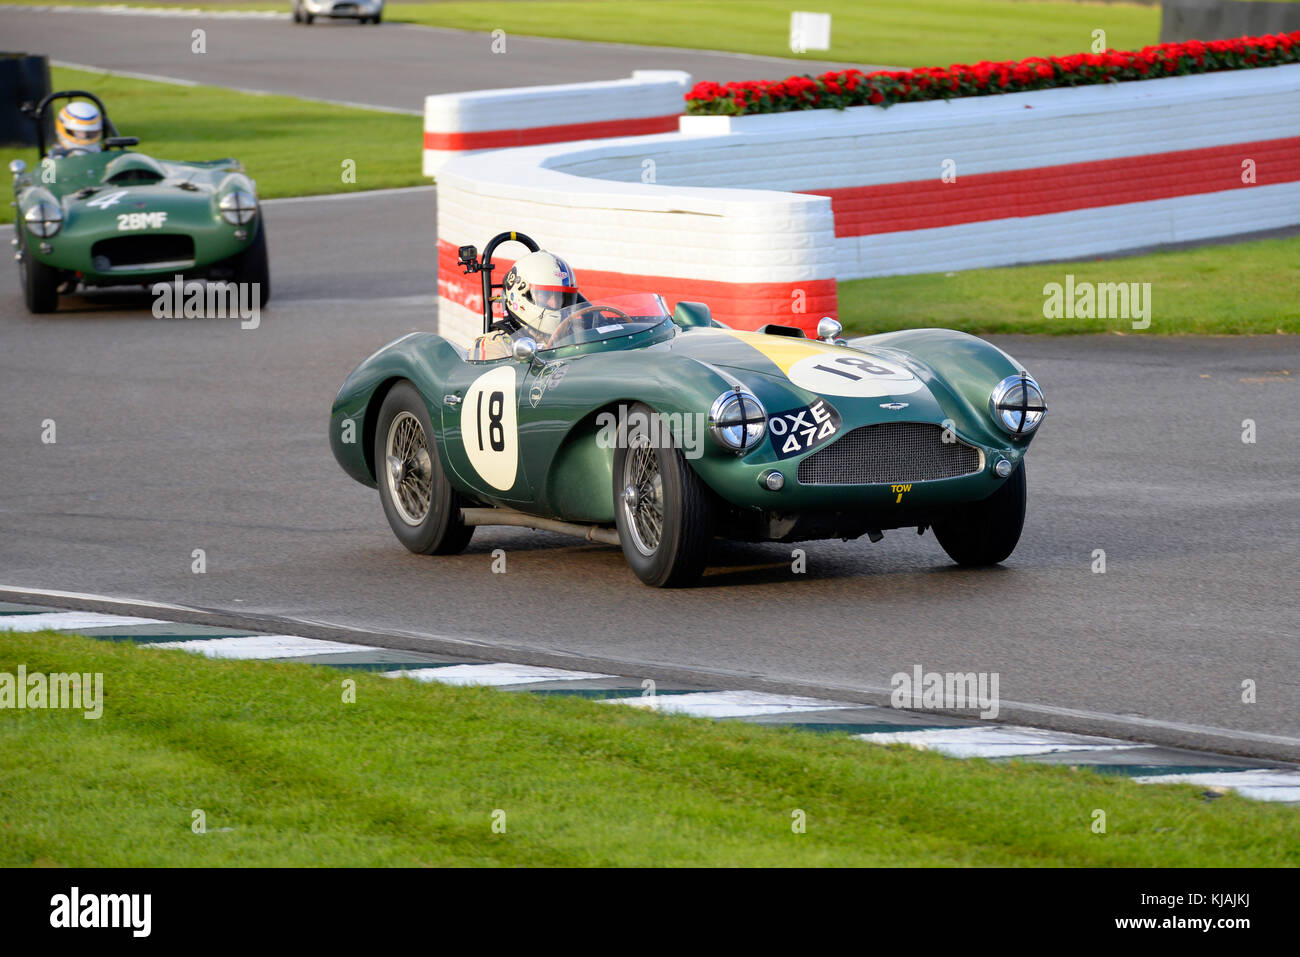 1955 Aston Martin DB3S owned and driven by Steve Boultbee Brooks racing in the Freddie March Memorial Trophy at the Goodwood Revival 2017 Stock Photo